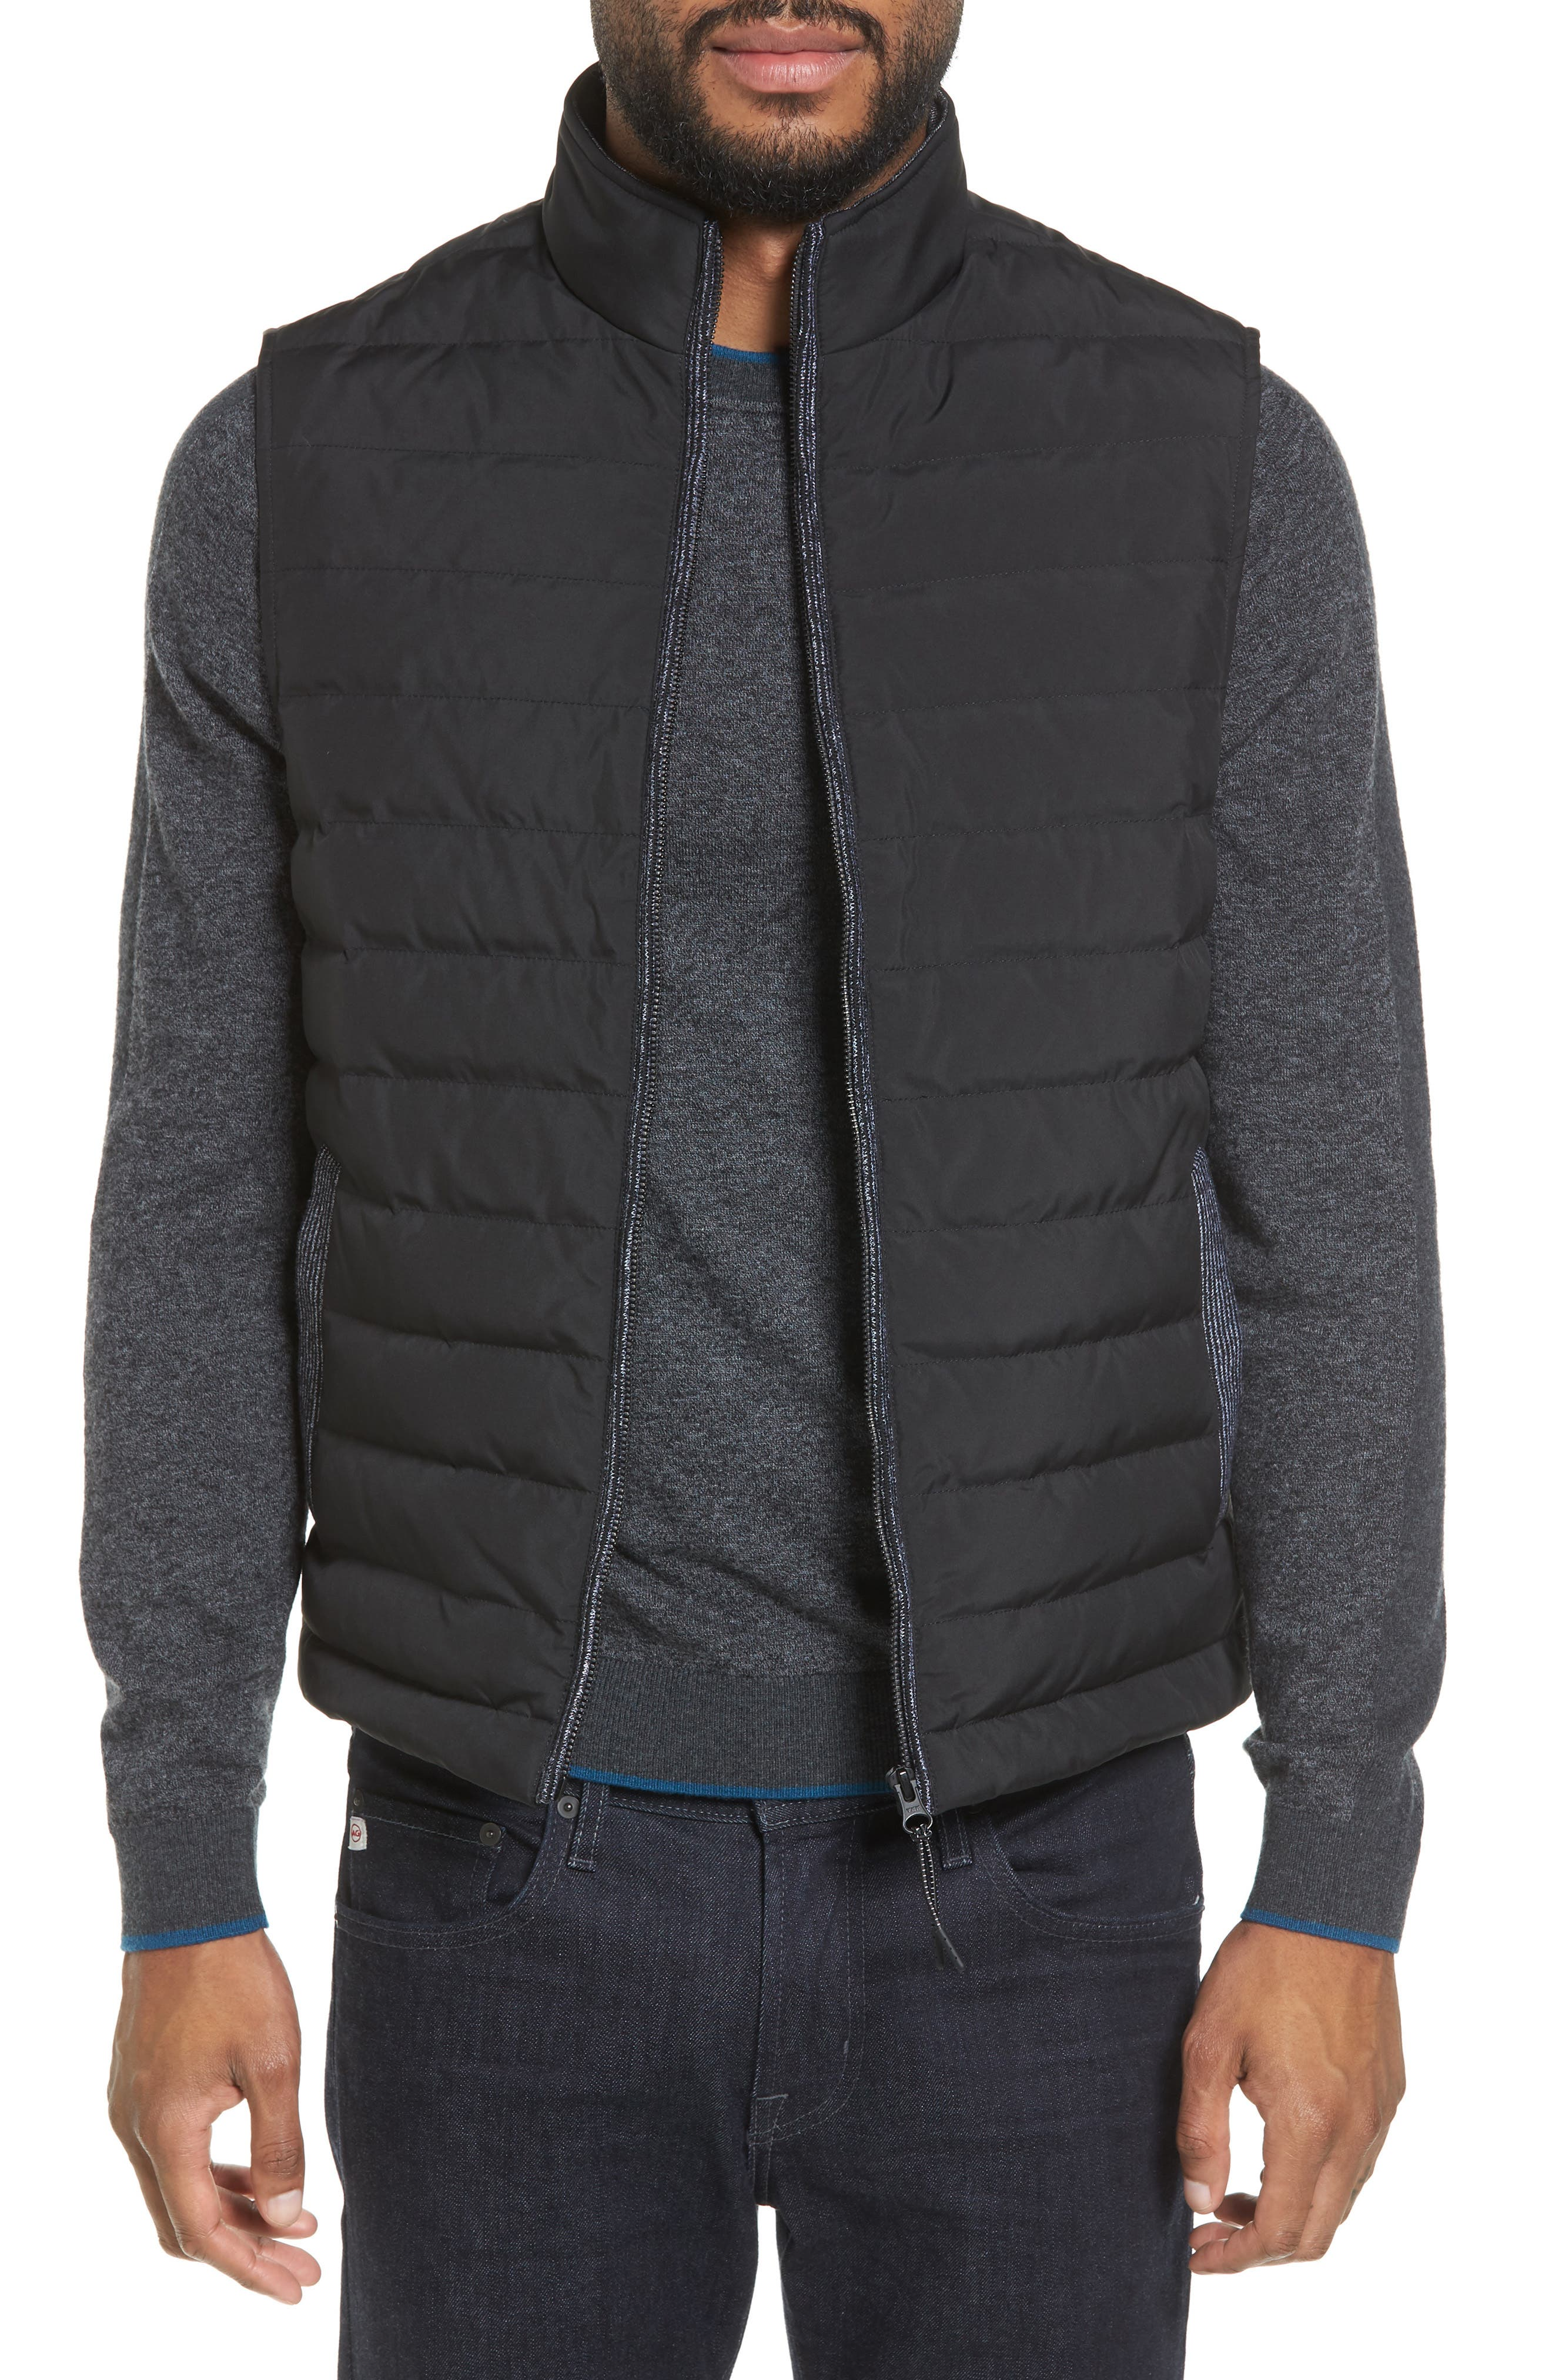 Jozeph Quilted Down Vest,                             Main thumbnail 1, color,                             Black